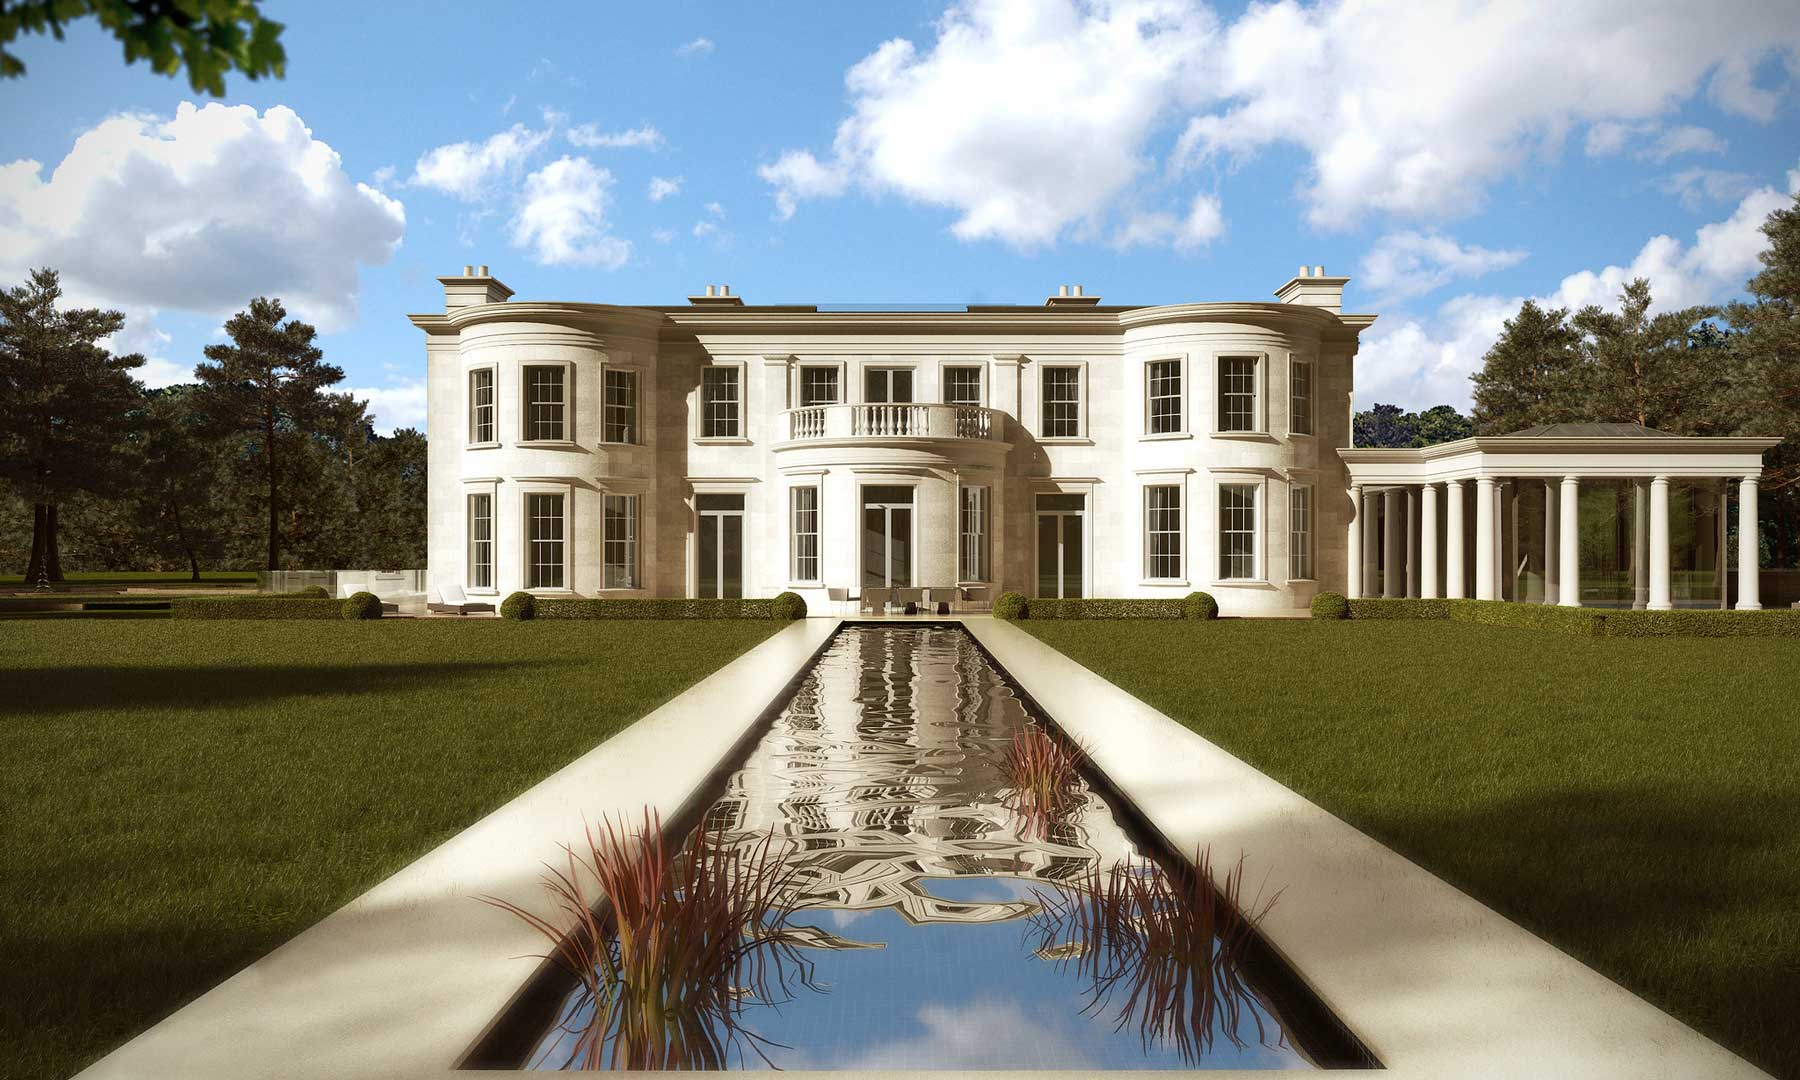 lake-house-wentworth-estate-our-work-private-client-ascot-design-view2.jpg